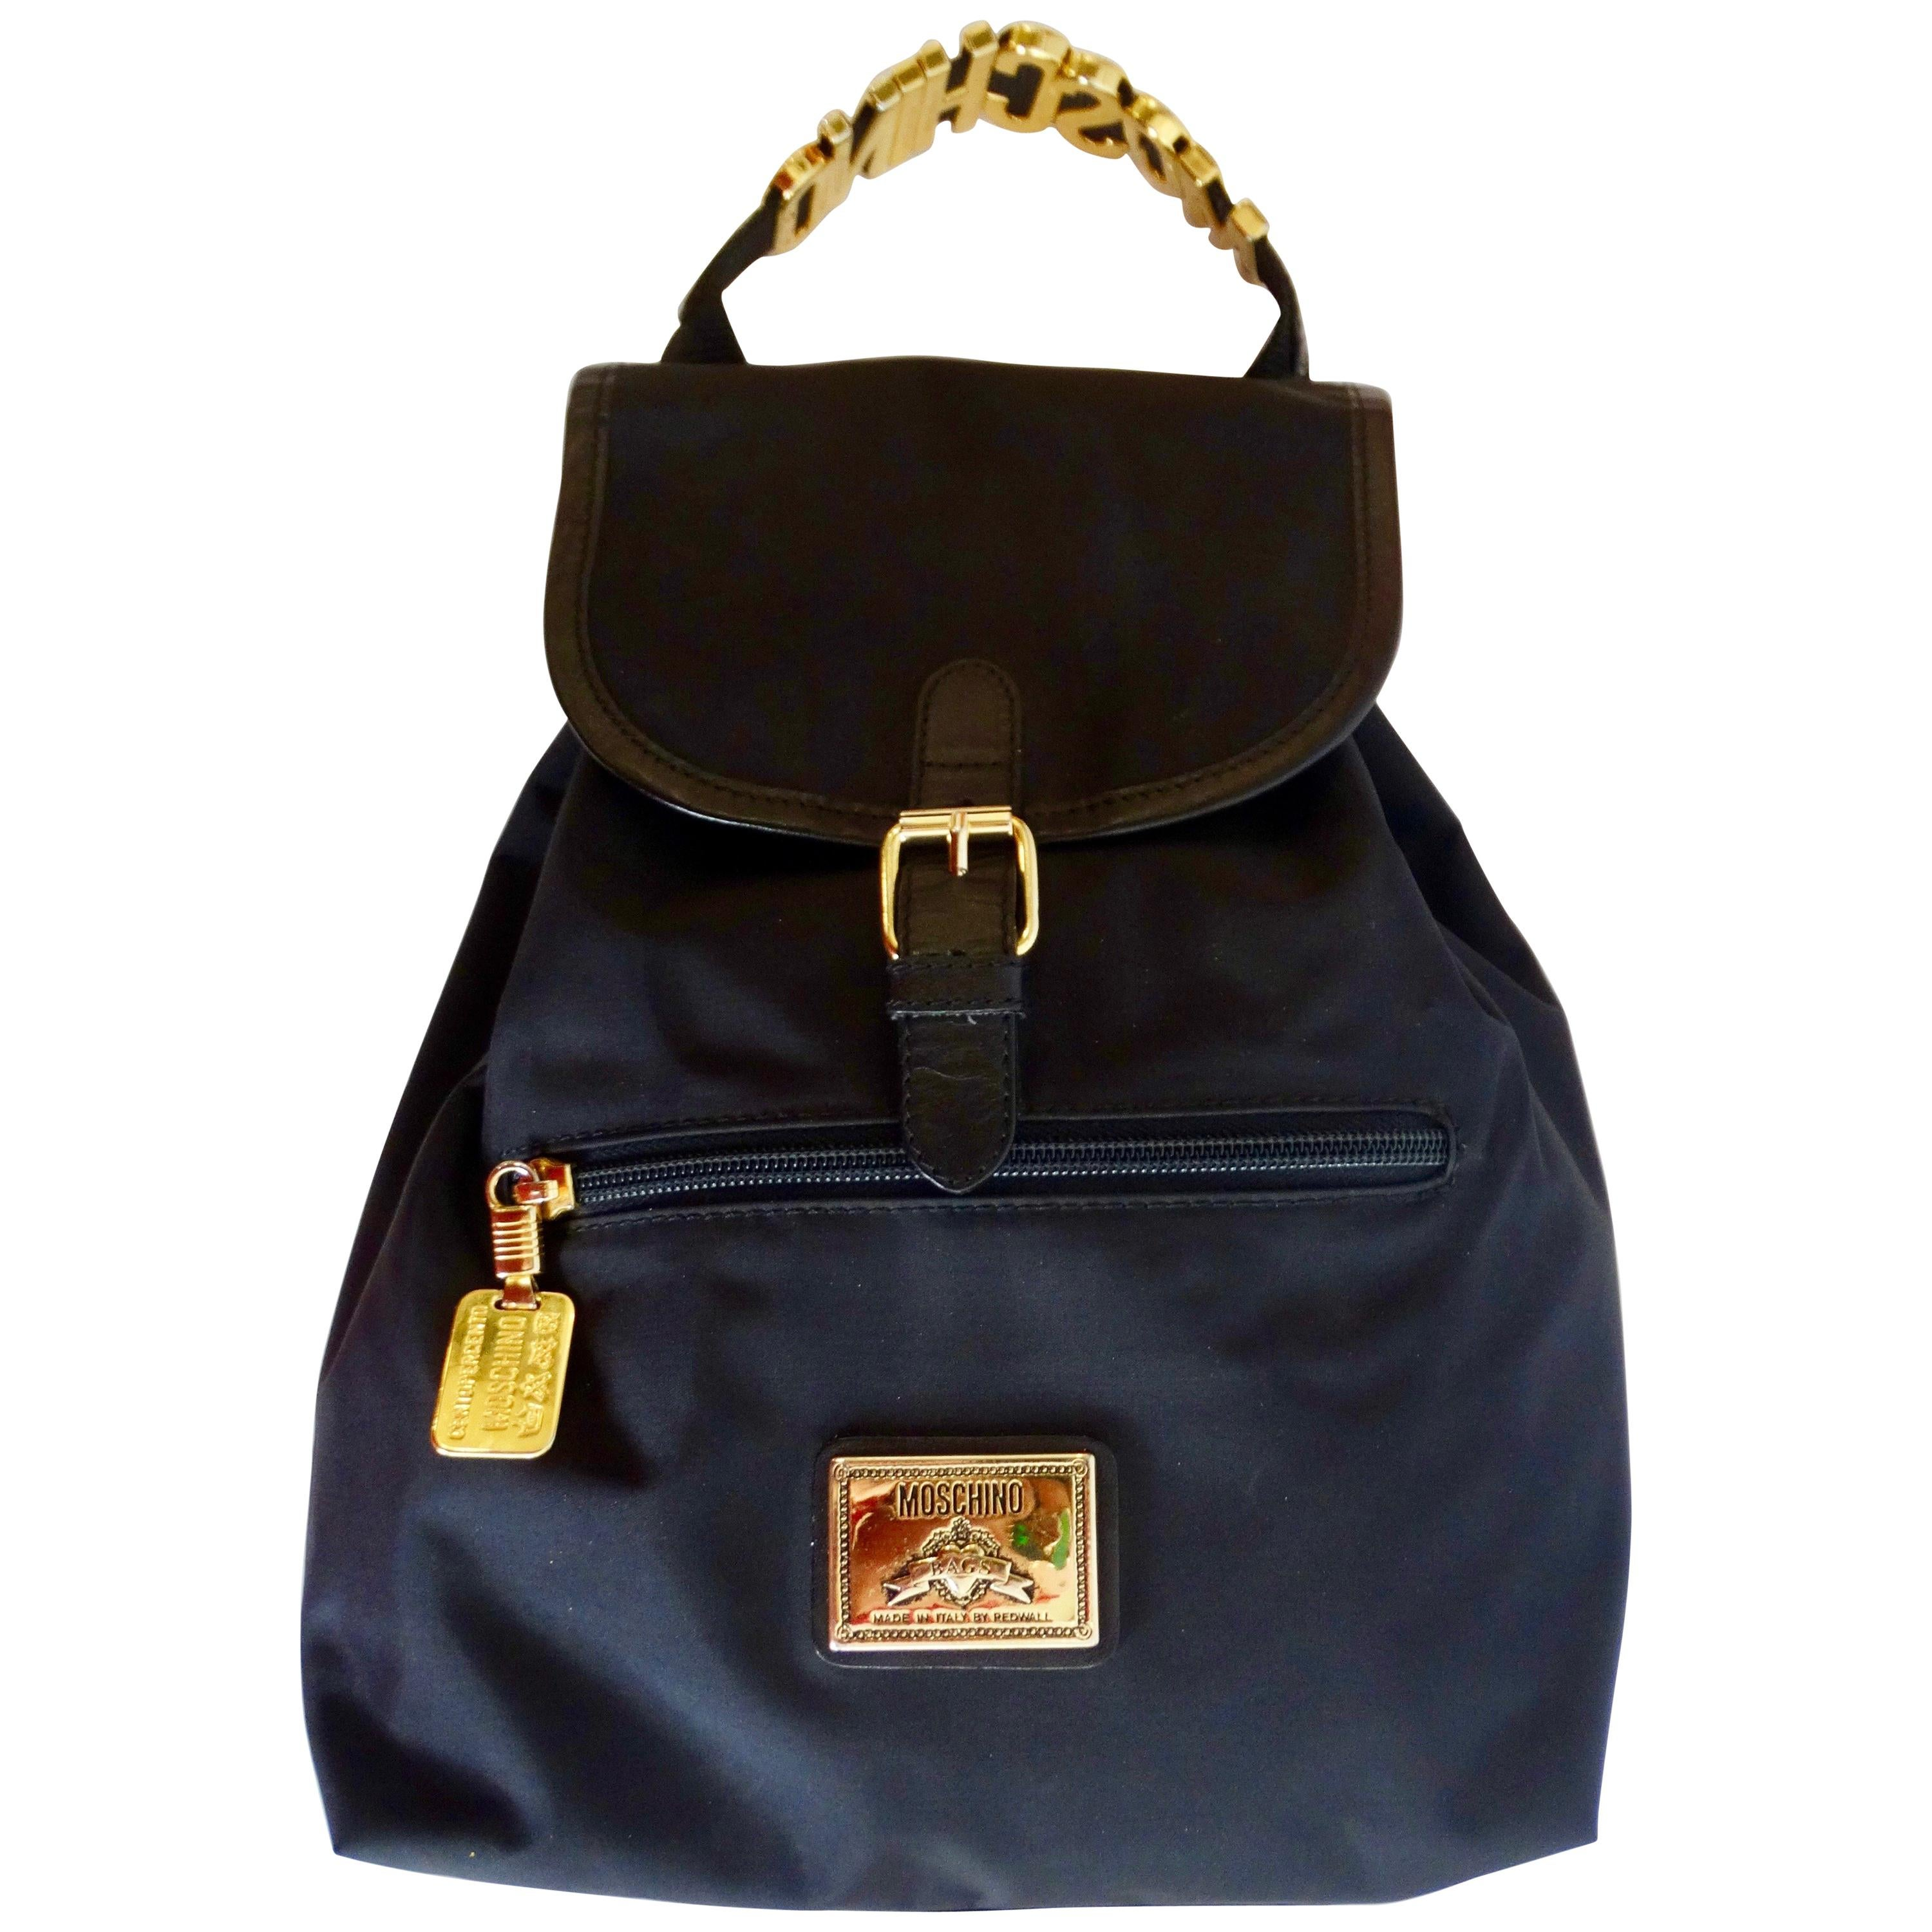 6a5f6cf4bd9e Moschino Black Suede Leather Backpack with Charms For Sale at 1stdibs